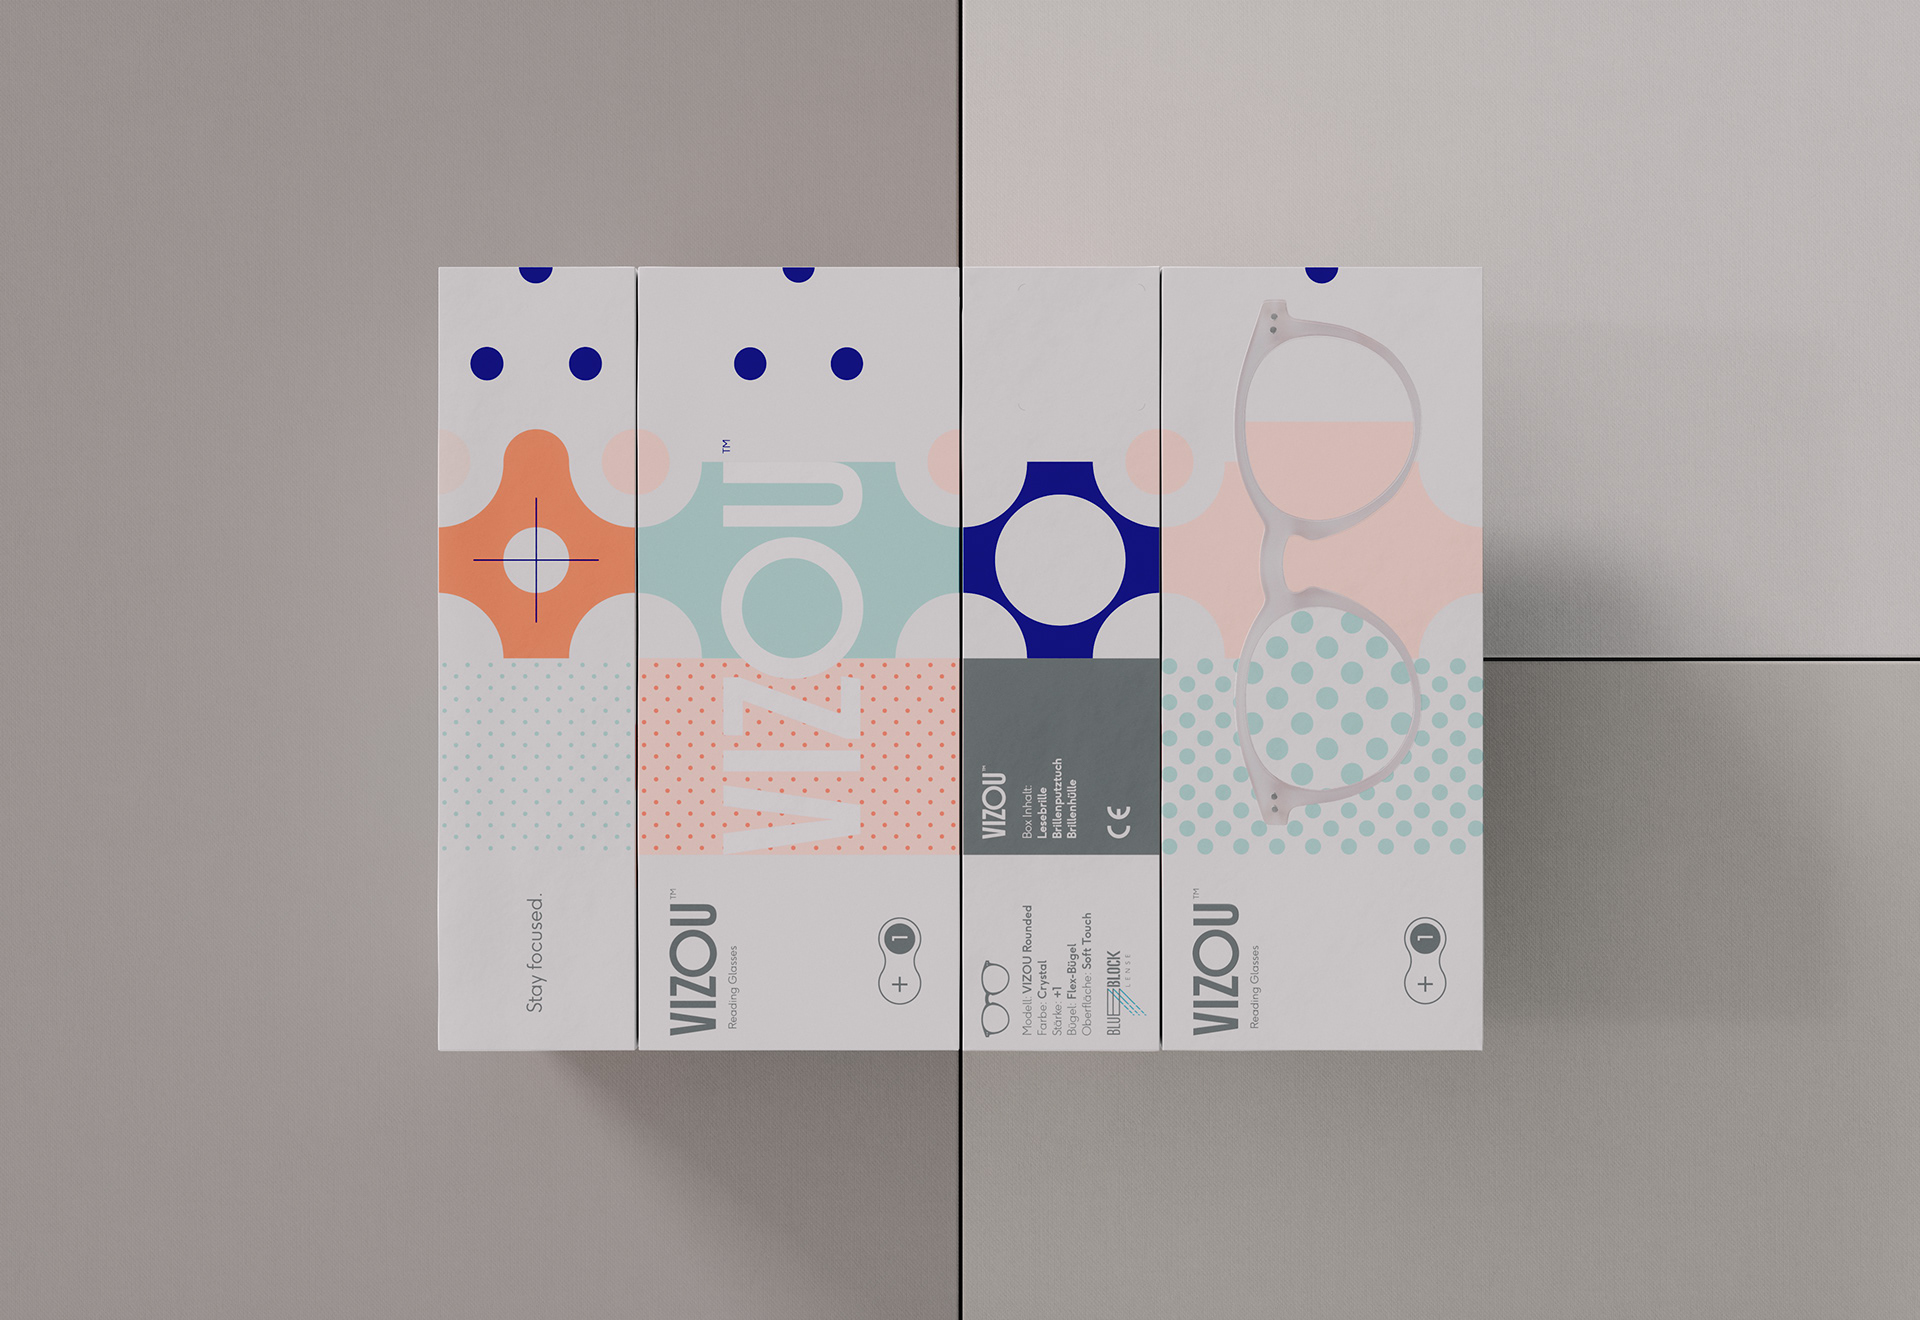 Packaging & Logo Design for Vizou's reading glasses collection